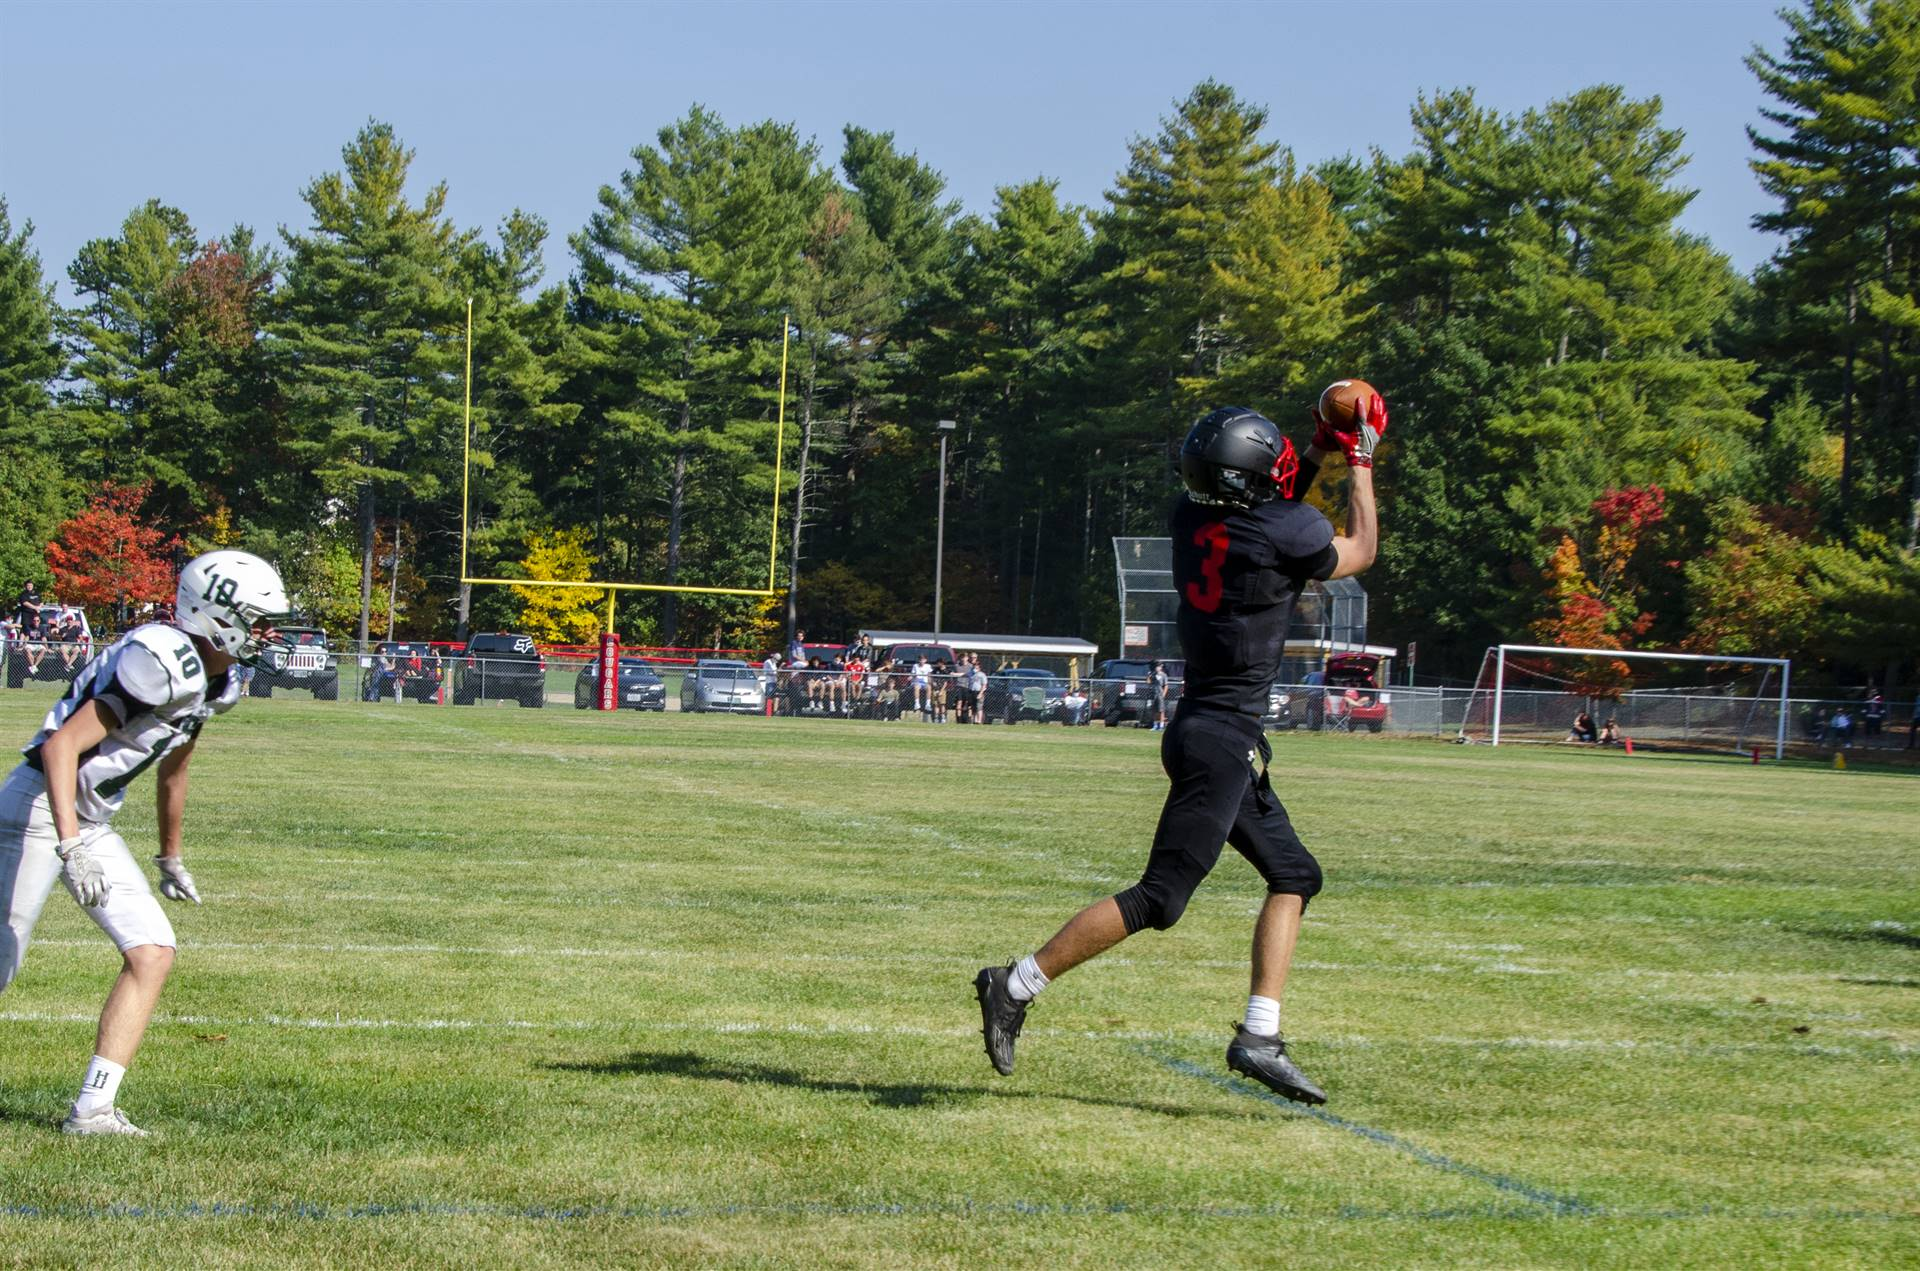 Will with the catch